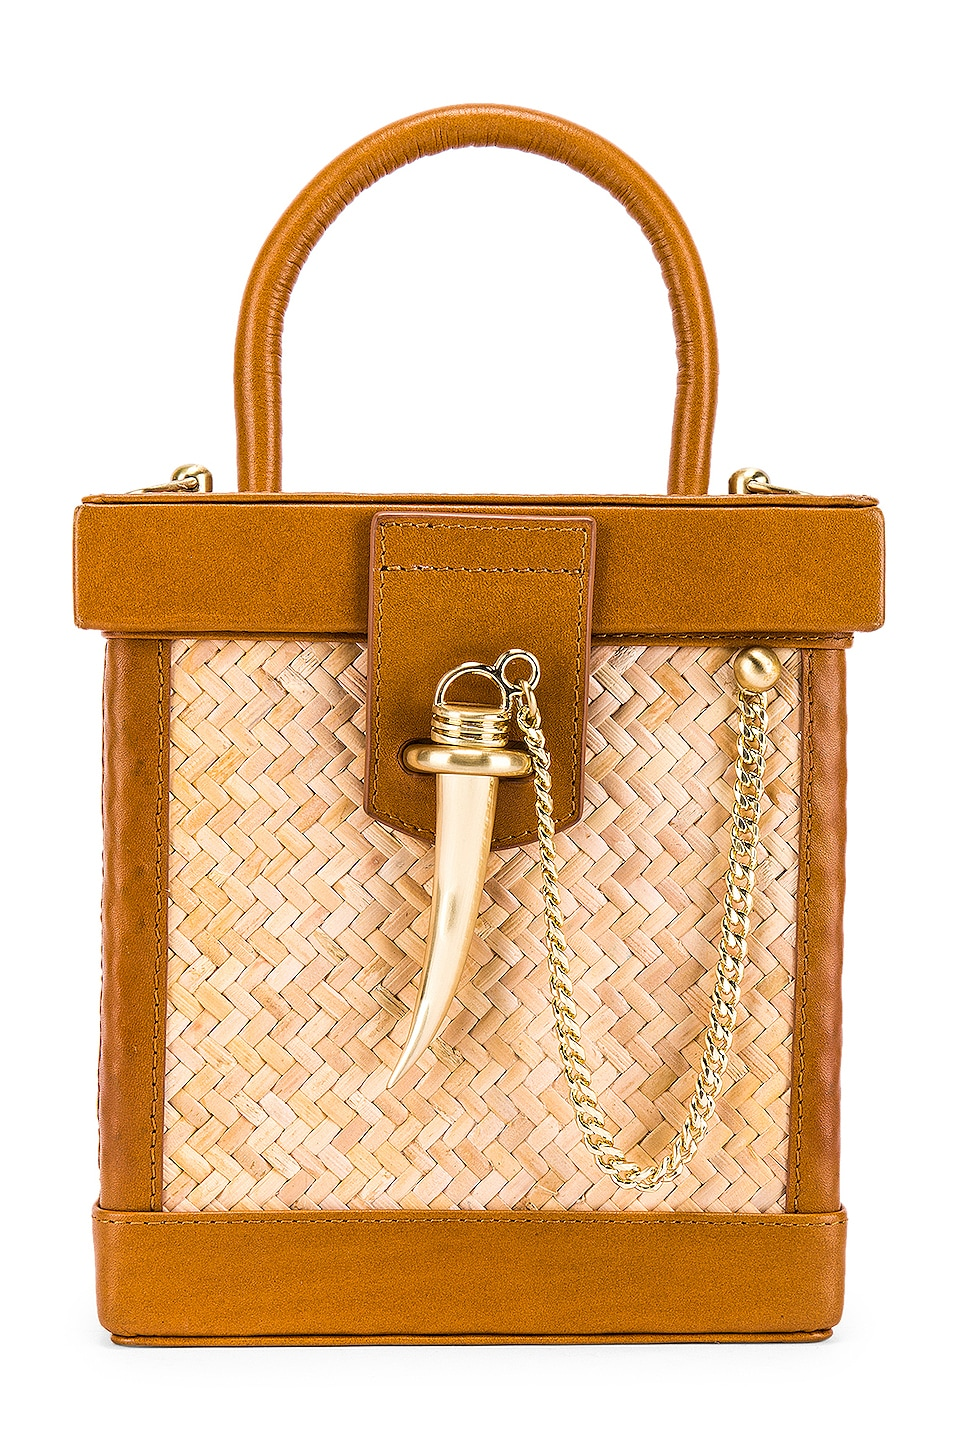 Sancia L'Echelle Mini Crossbody in Cognac